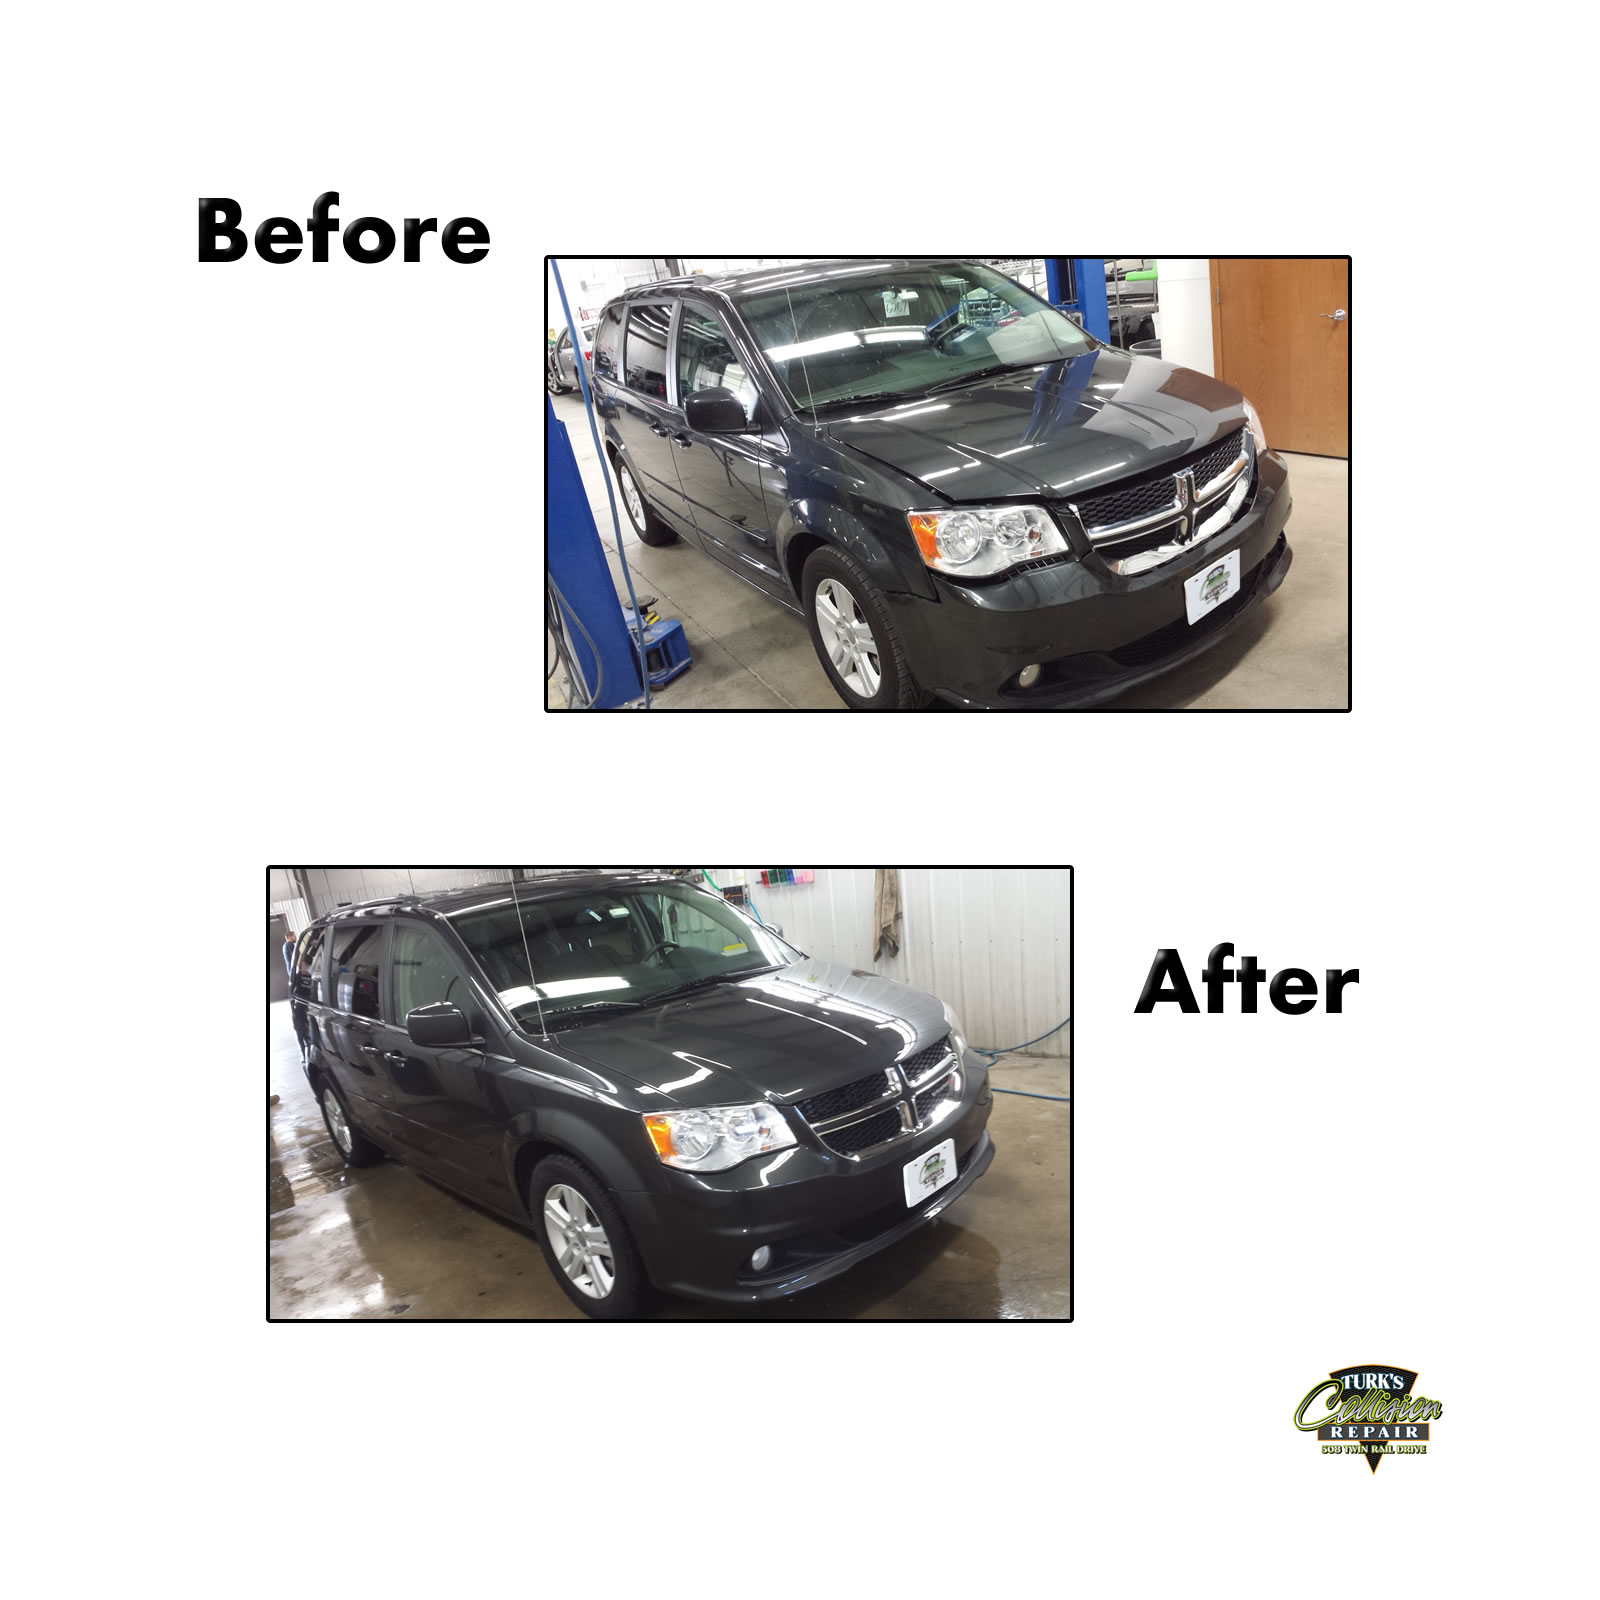 Dodge Caravan Collision Repair